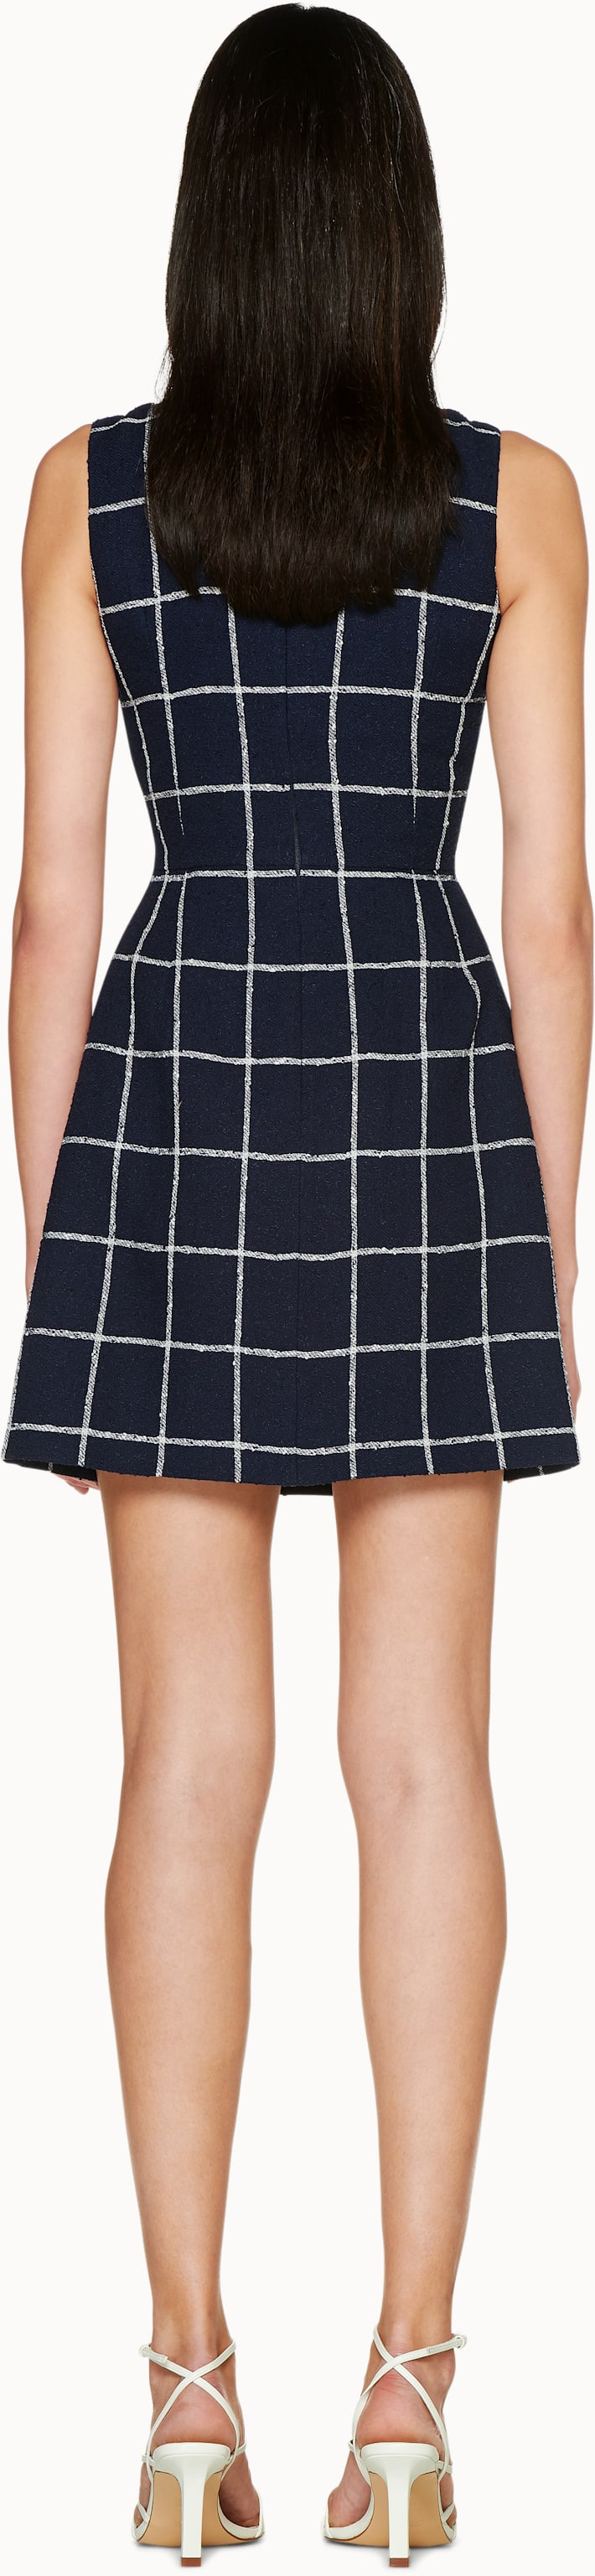 Navy Checked Dress